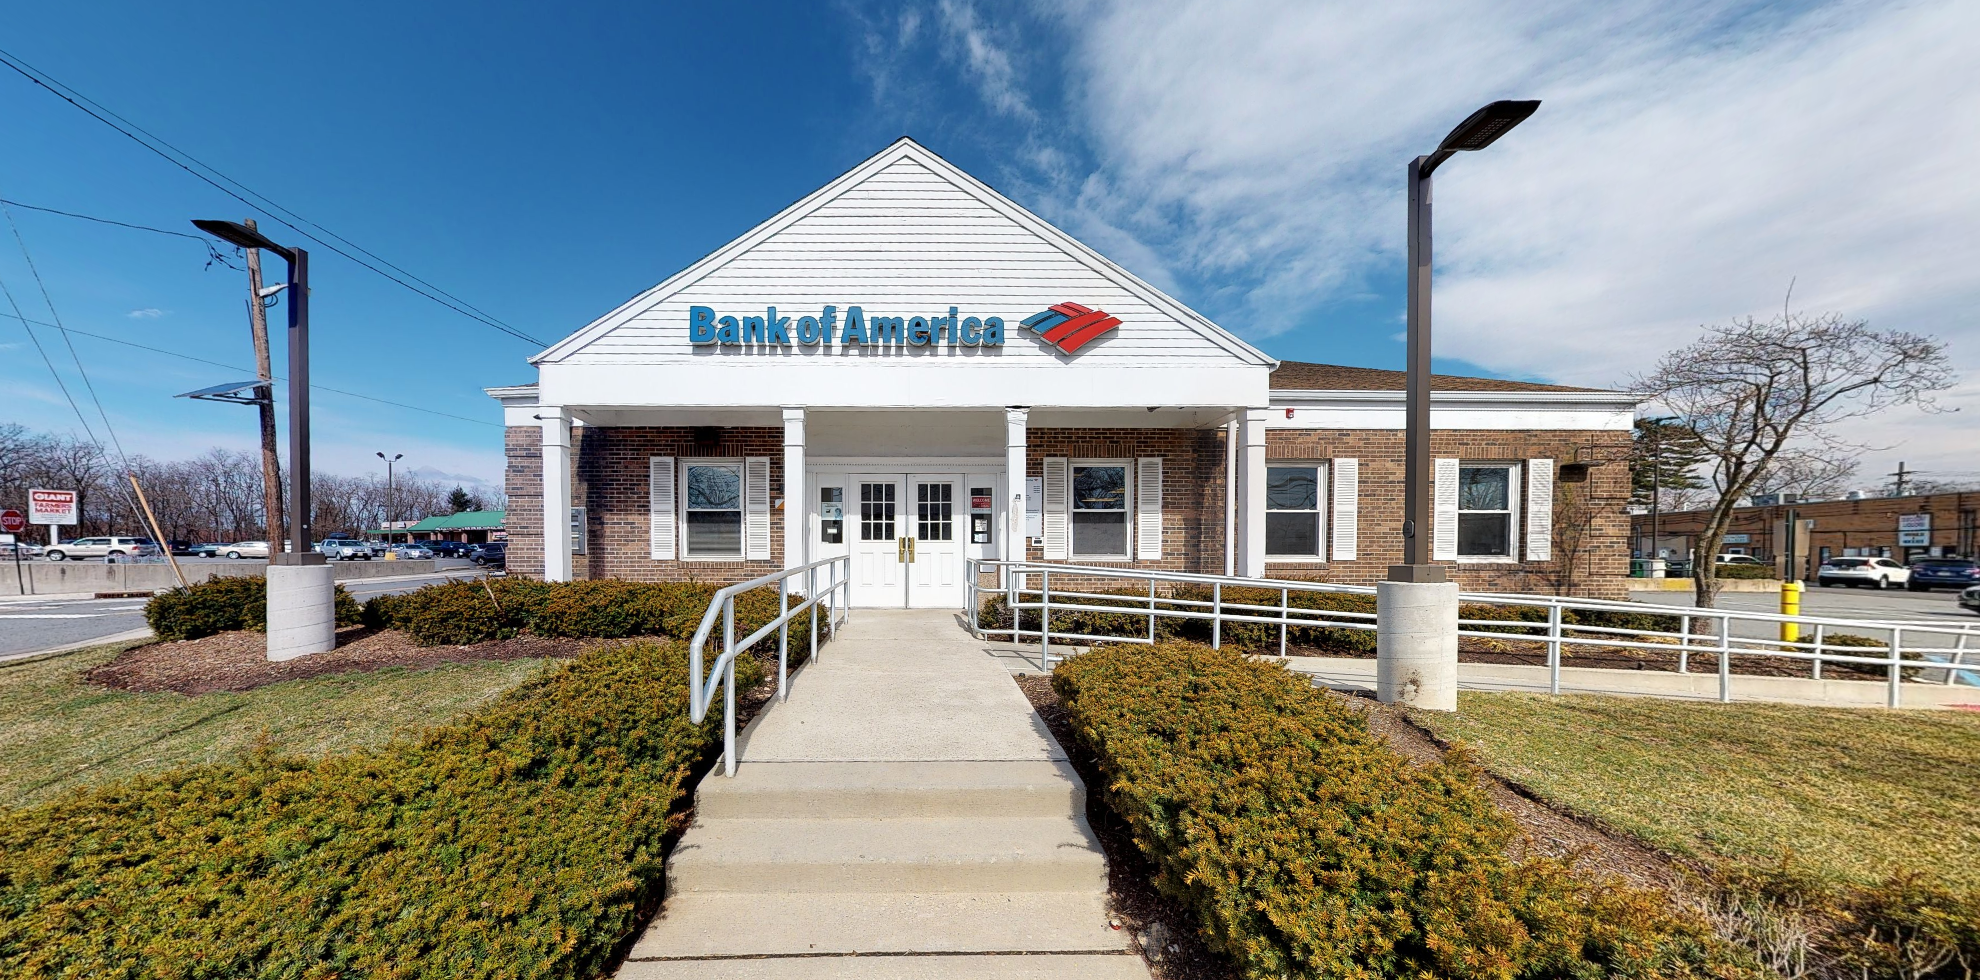 Bank of America financial center with drive-thru ATM | 11 Wyckoff Ave, Waldwick, NJ 07463